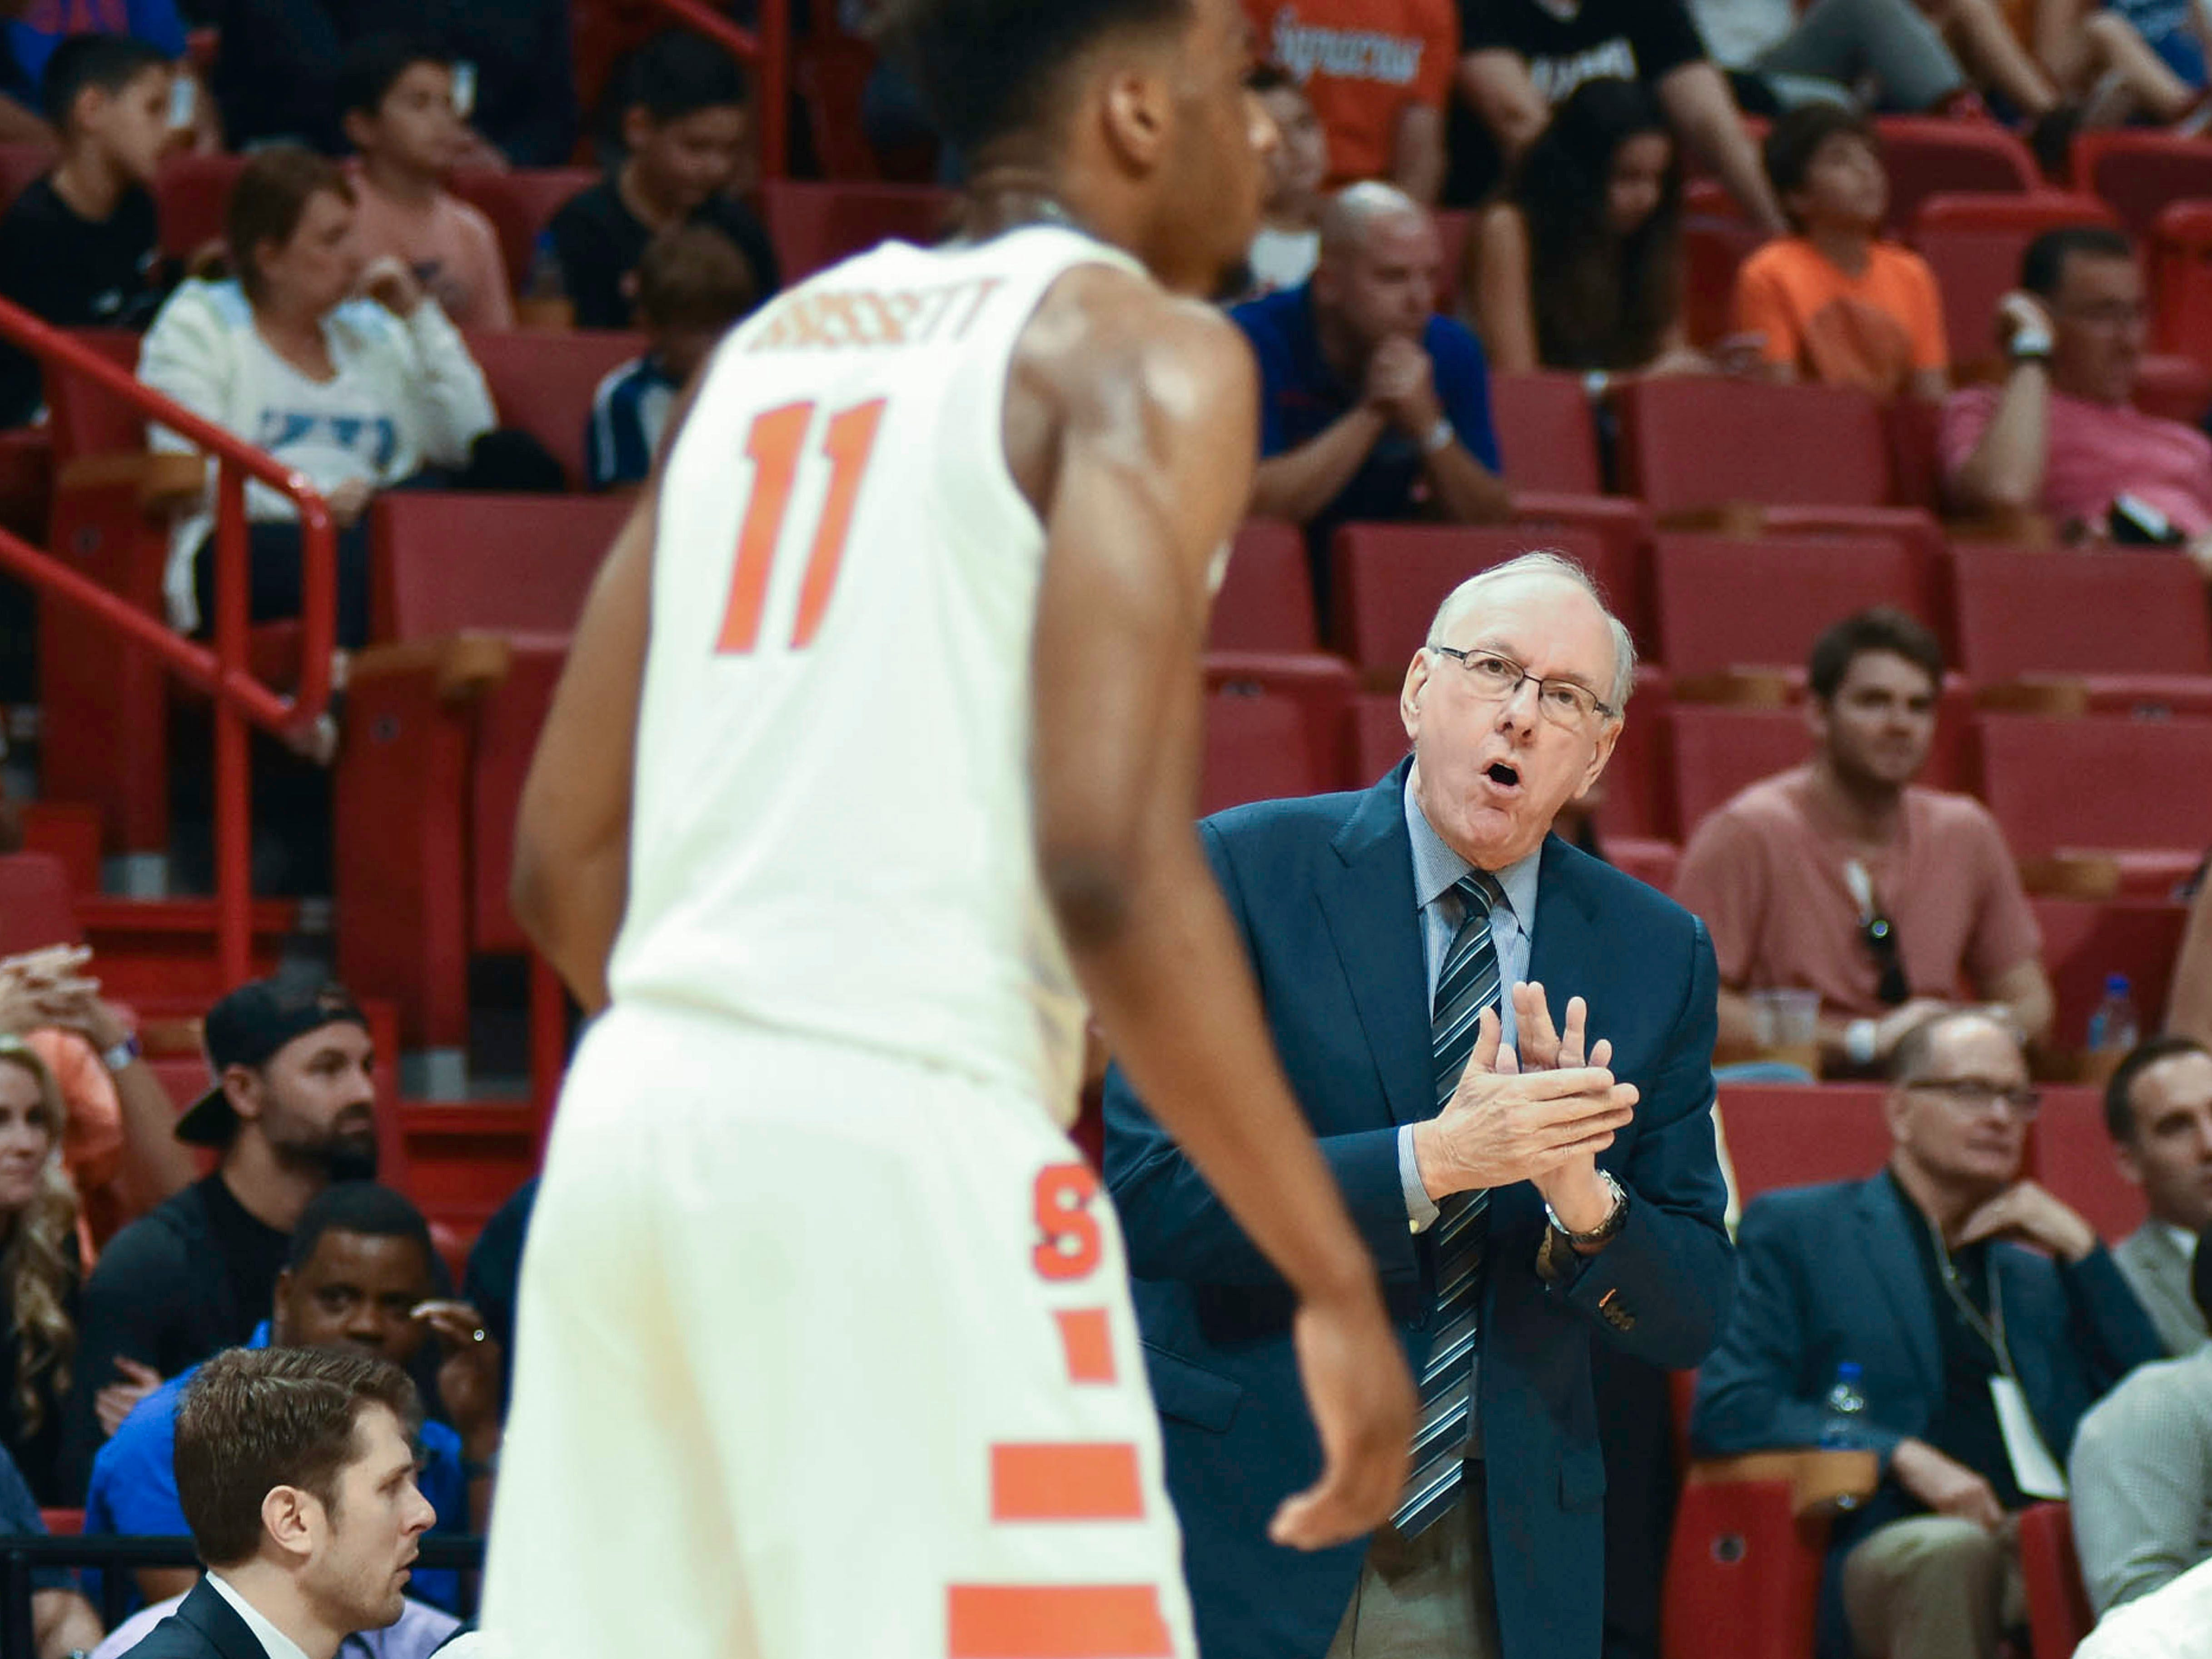 2017: Syracuse's head coach Jim Boeheim rallies his players during the first half of an NCAA college basketball game at the HoopHall Miami Invitational tournament Saturday, Dec. 2, 2017, in Miami. Kansas won 76-60. (AP Photo/Gaston De Cardenas)